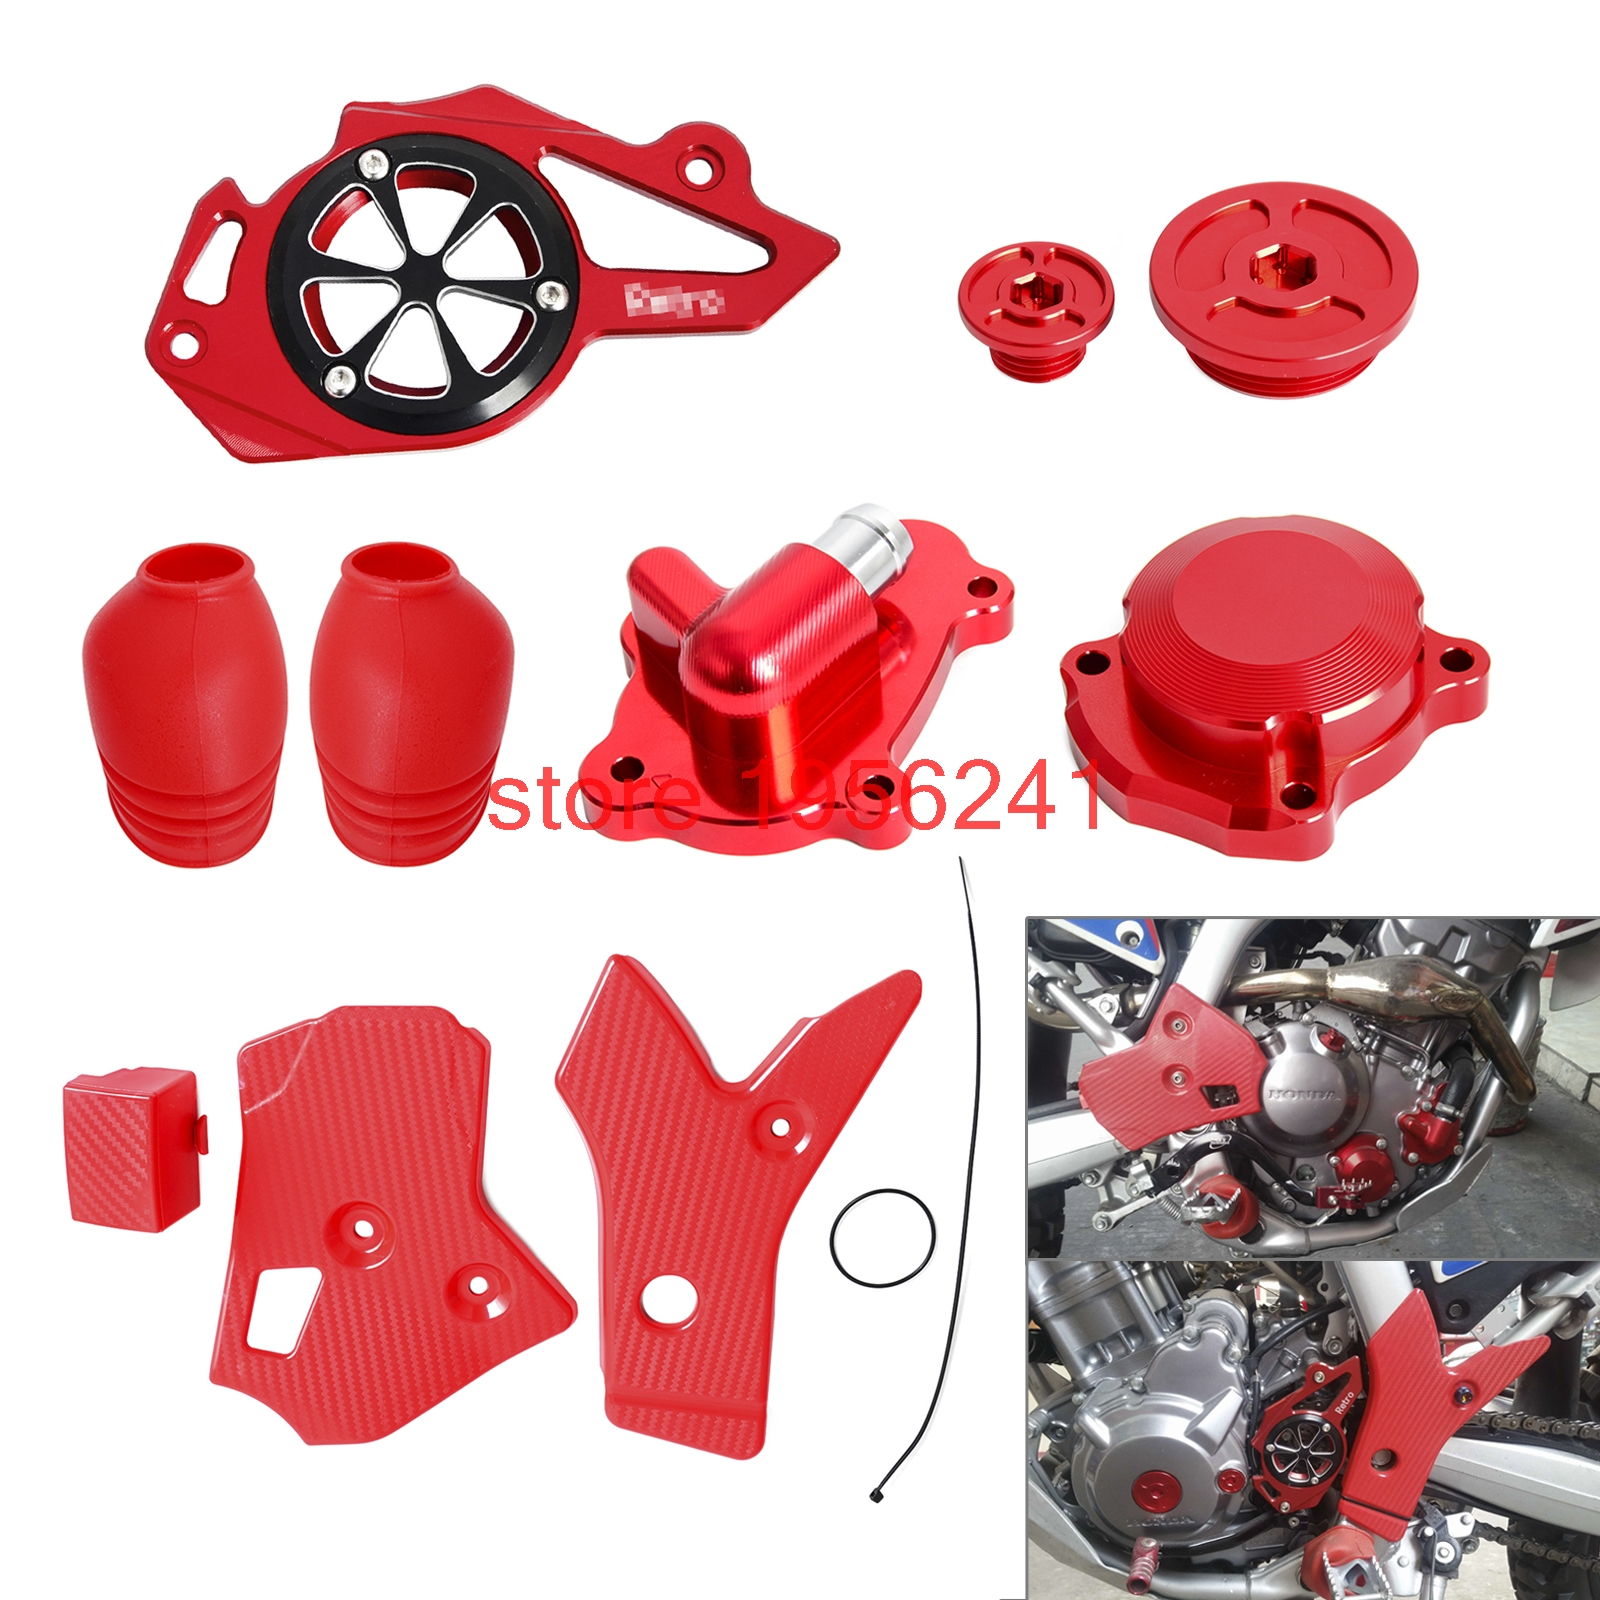 Modification Parts Water Pump Cover & Protect Cover & Oil Filter Cover & Others Bling Kit For Honda CRF250L CRF250M 2012-2015 6162 63 1015 sa6d170e 6d170 engine water pump for komatsu